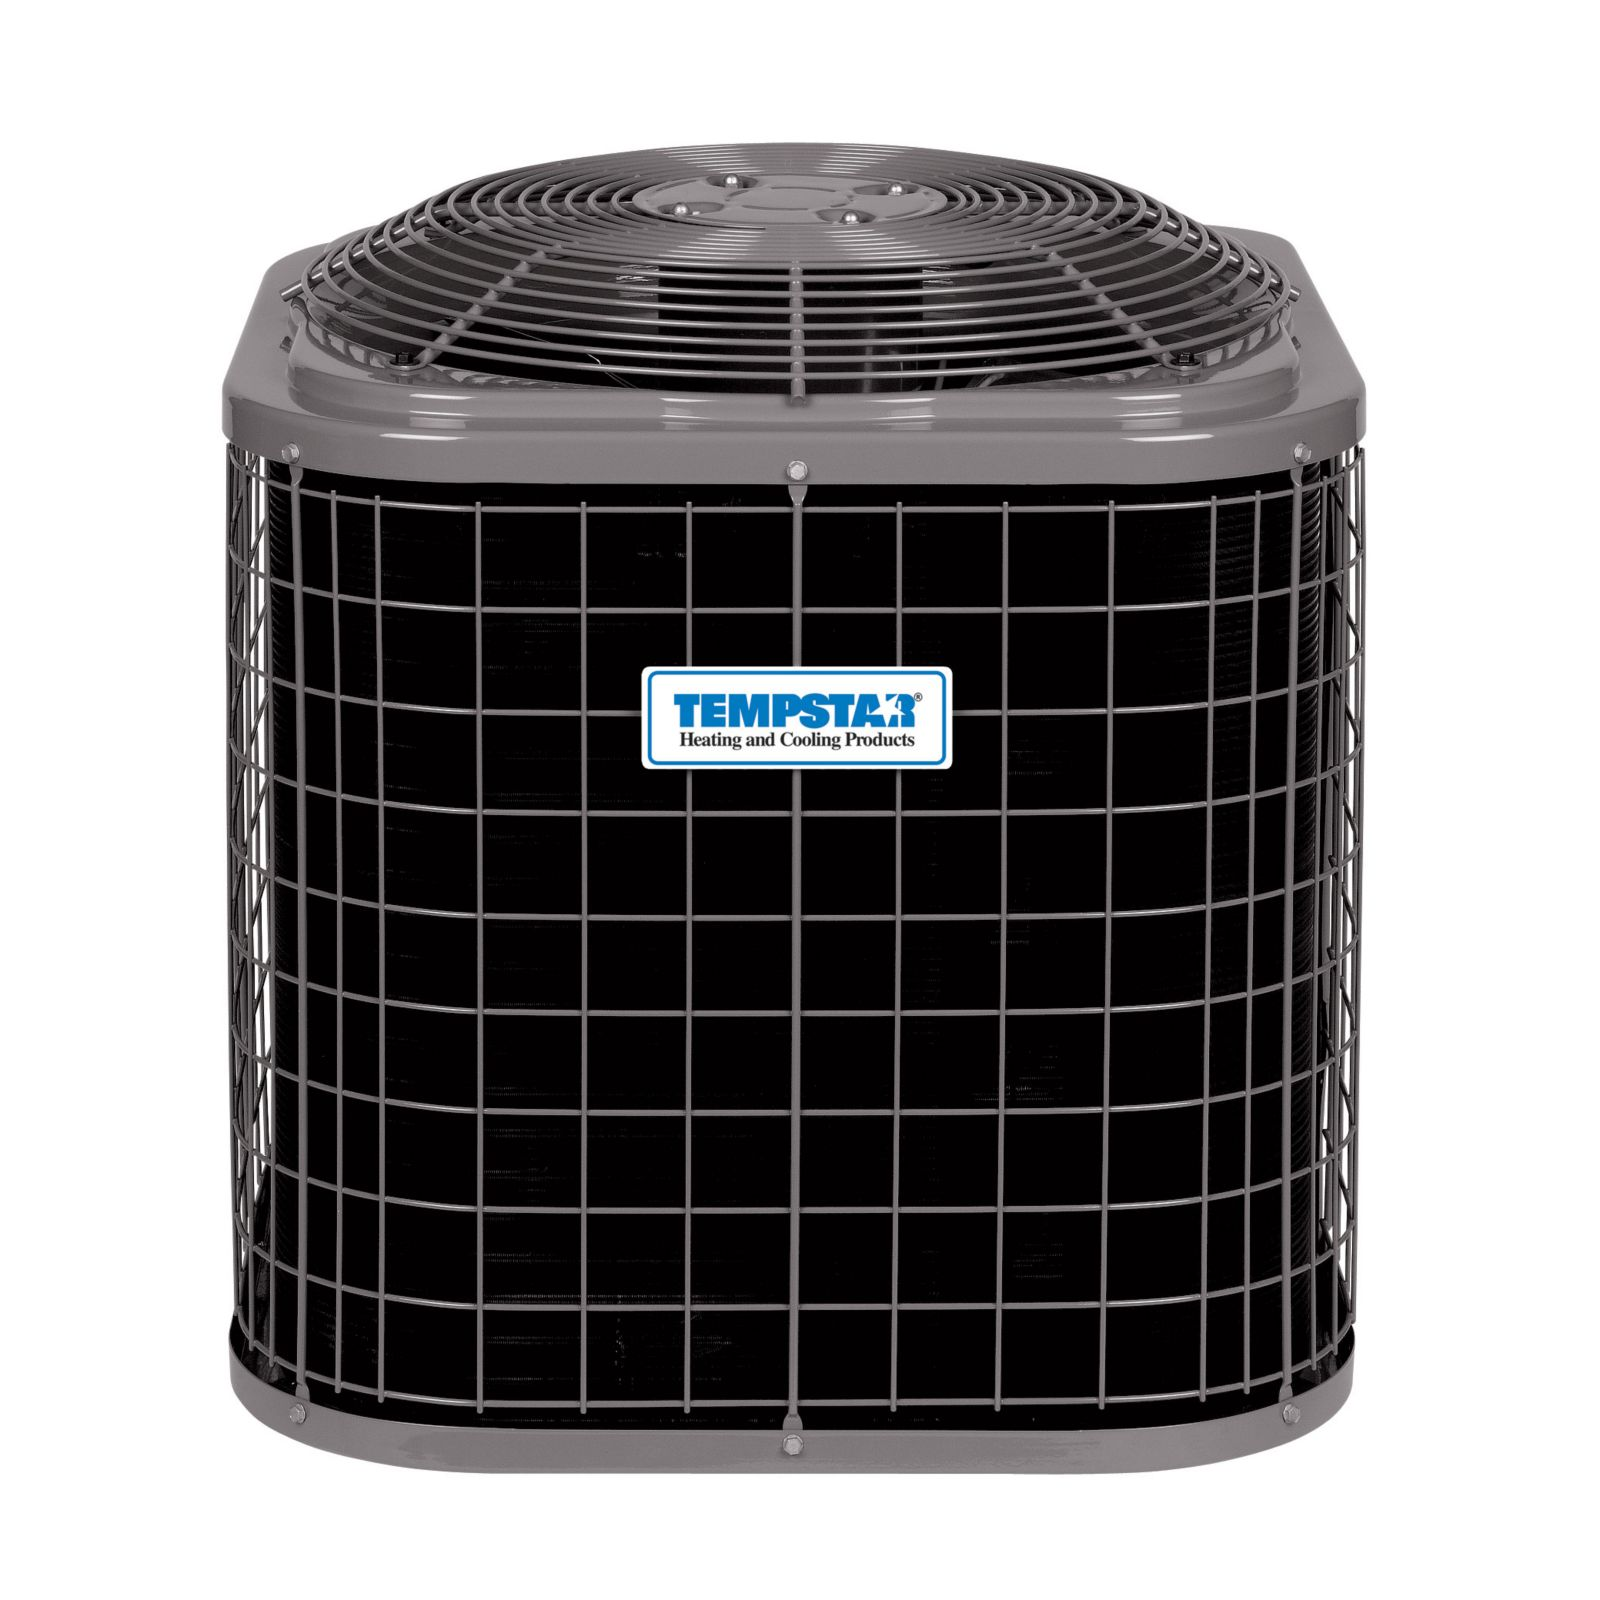 Tempstar NXA636GKA - 3 Ton, 16 SEER, R410A, Air Conditioner, Coil Guard Grille, 208/230-1-60